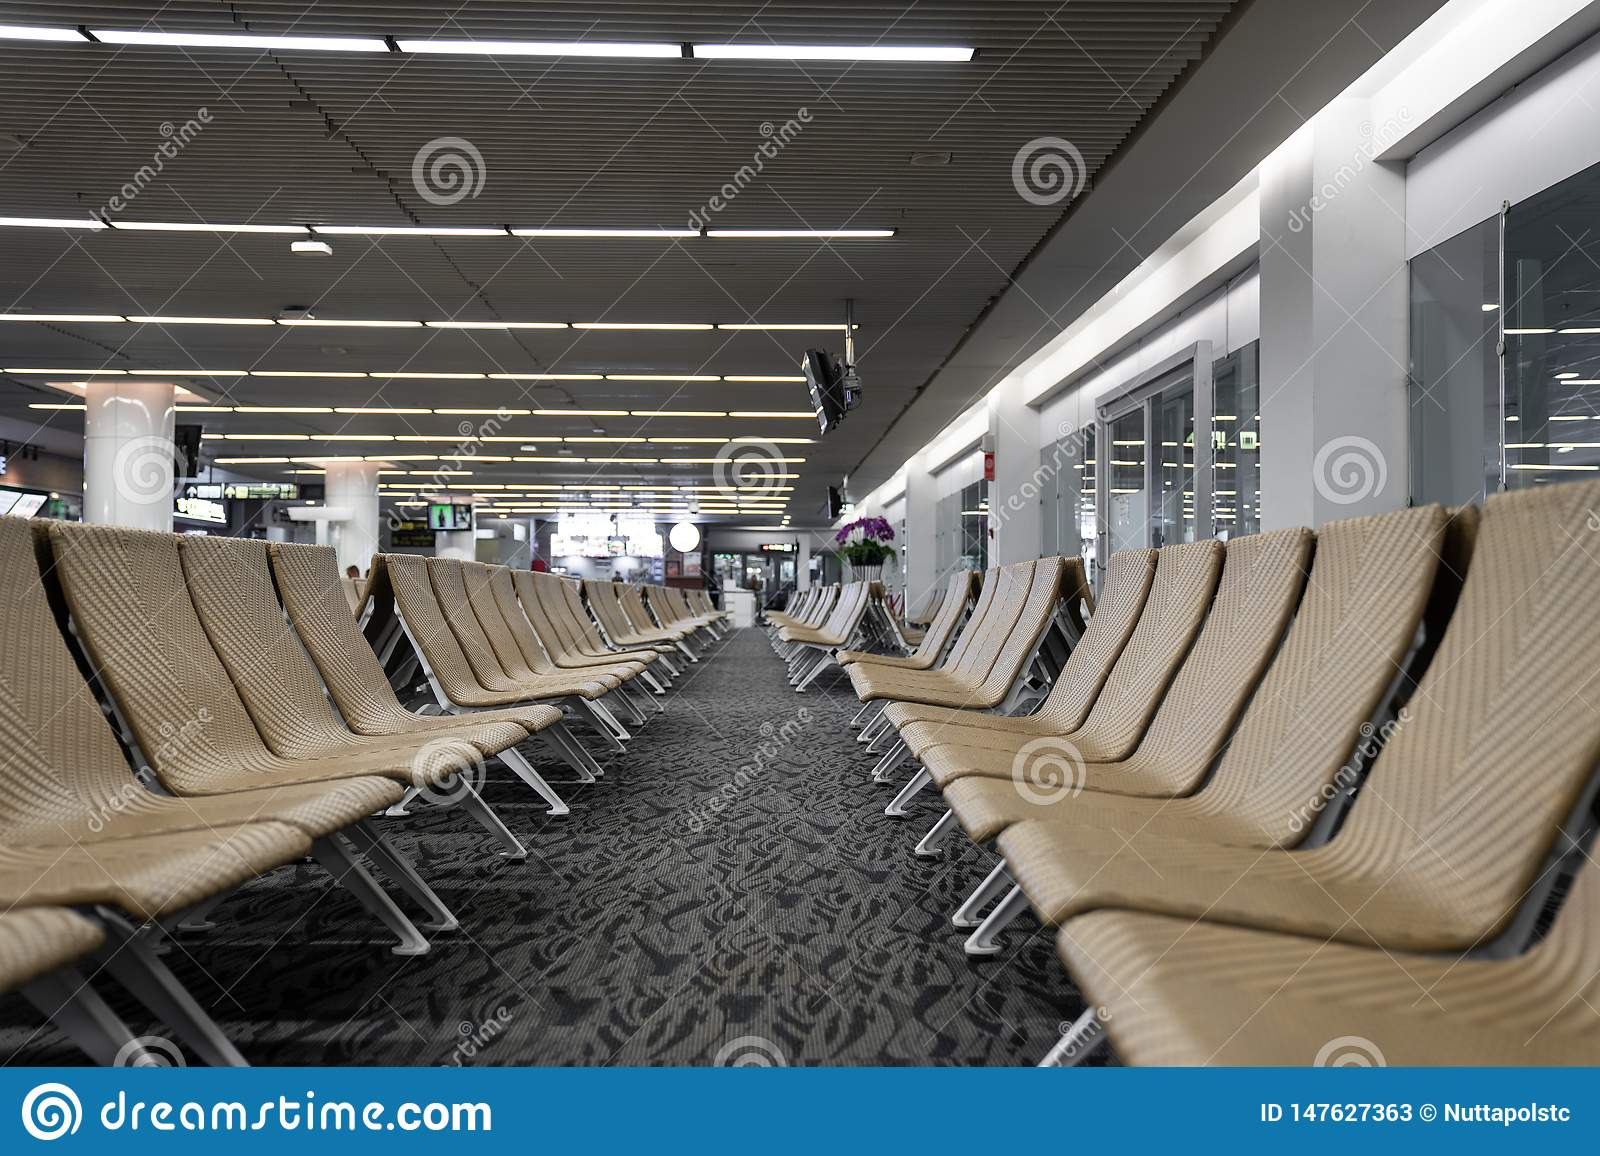 Empty artificial rattan seater in the airport / waiting lounge airport / artificial rattan material / travel passenger concept